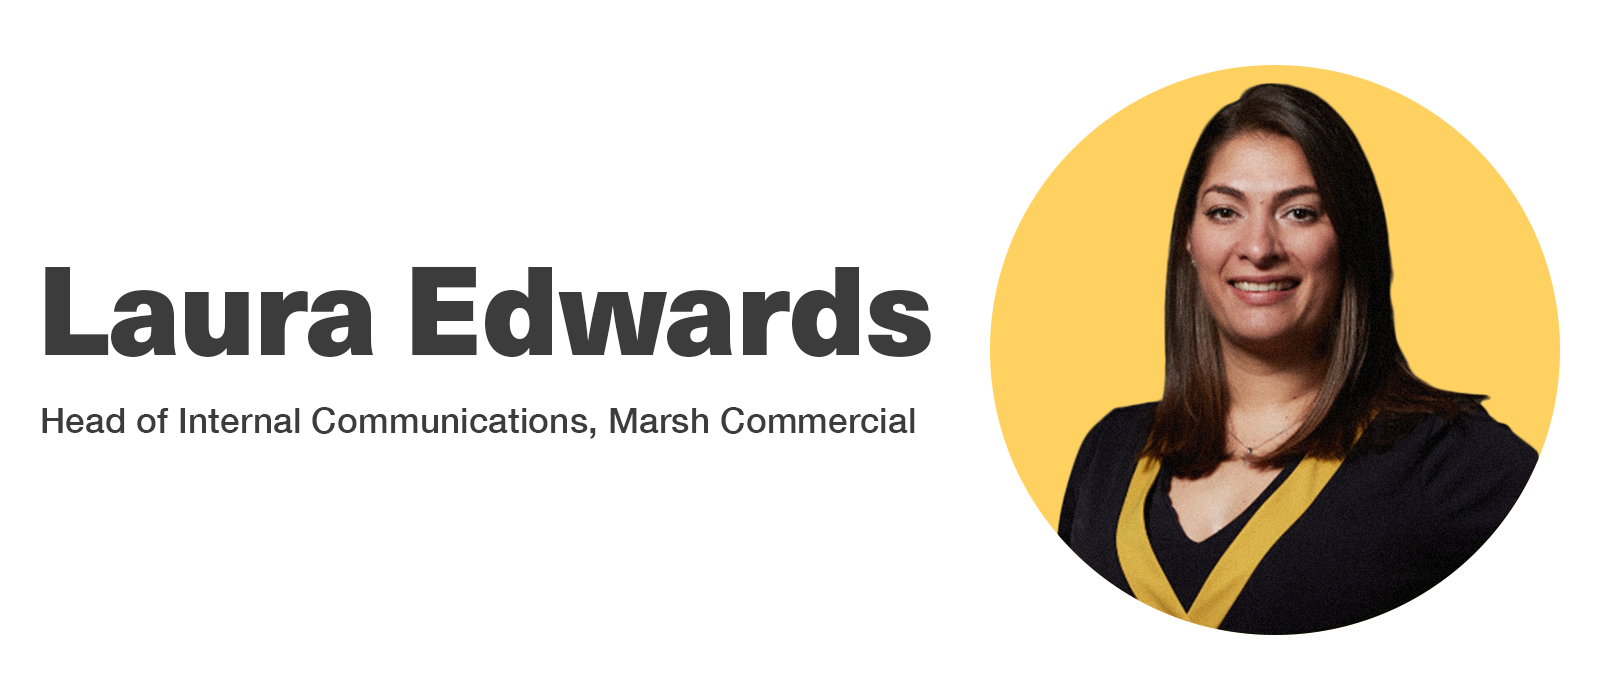 Laura Edwards and the role of the internal communications function